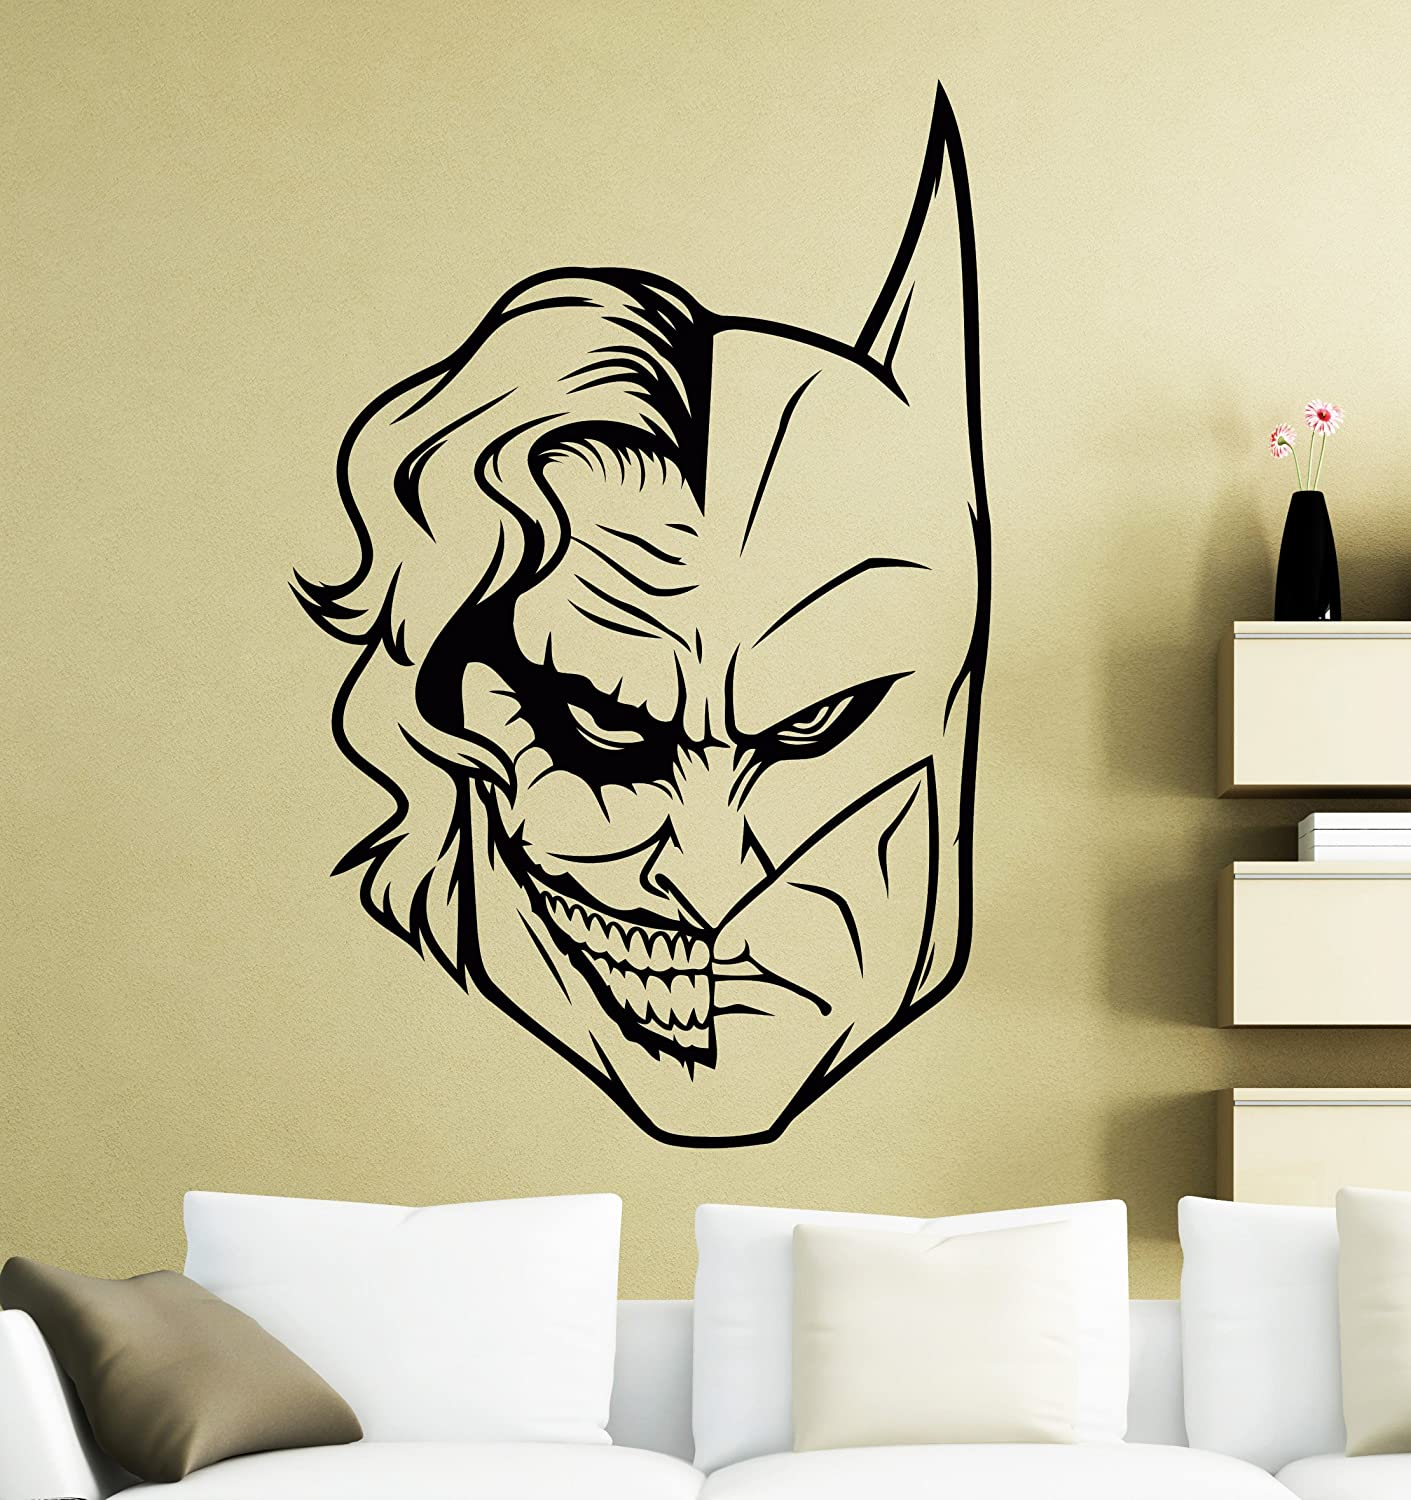 Batman and Joker Face Wall Decal Superhero Sticker Comics Art Home ...